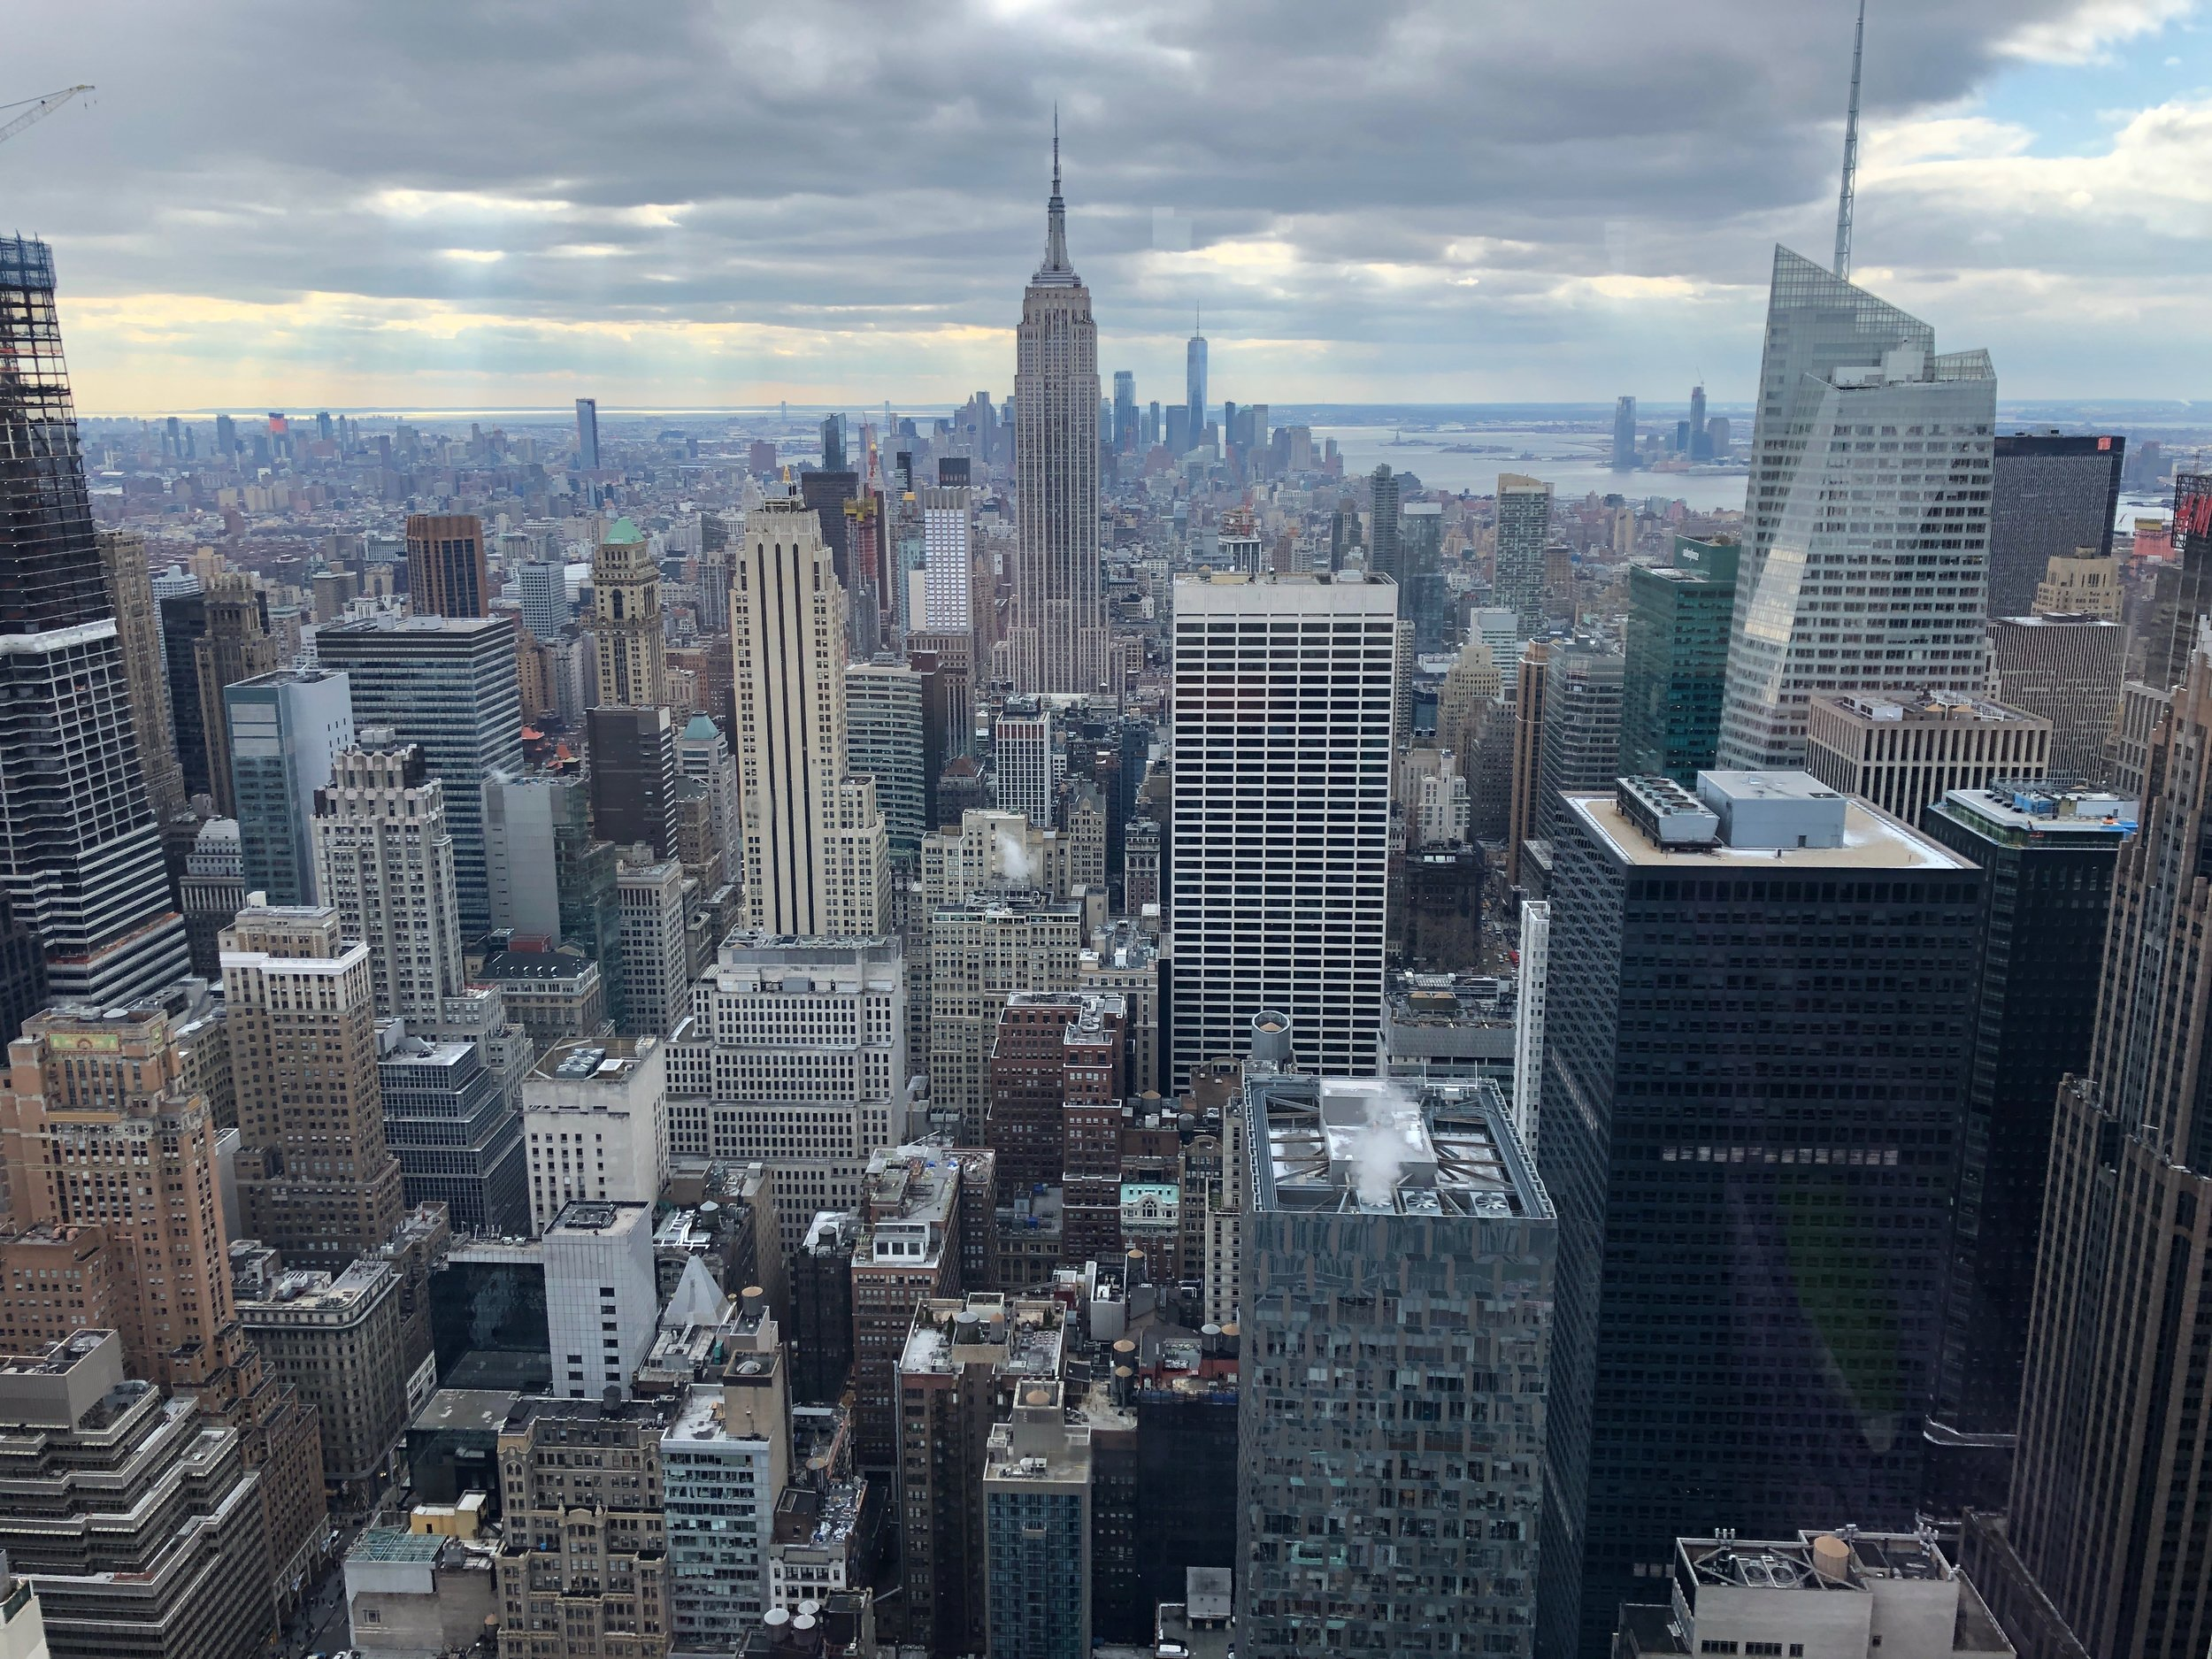 Just one of the amazing views from the Top of the Rock